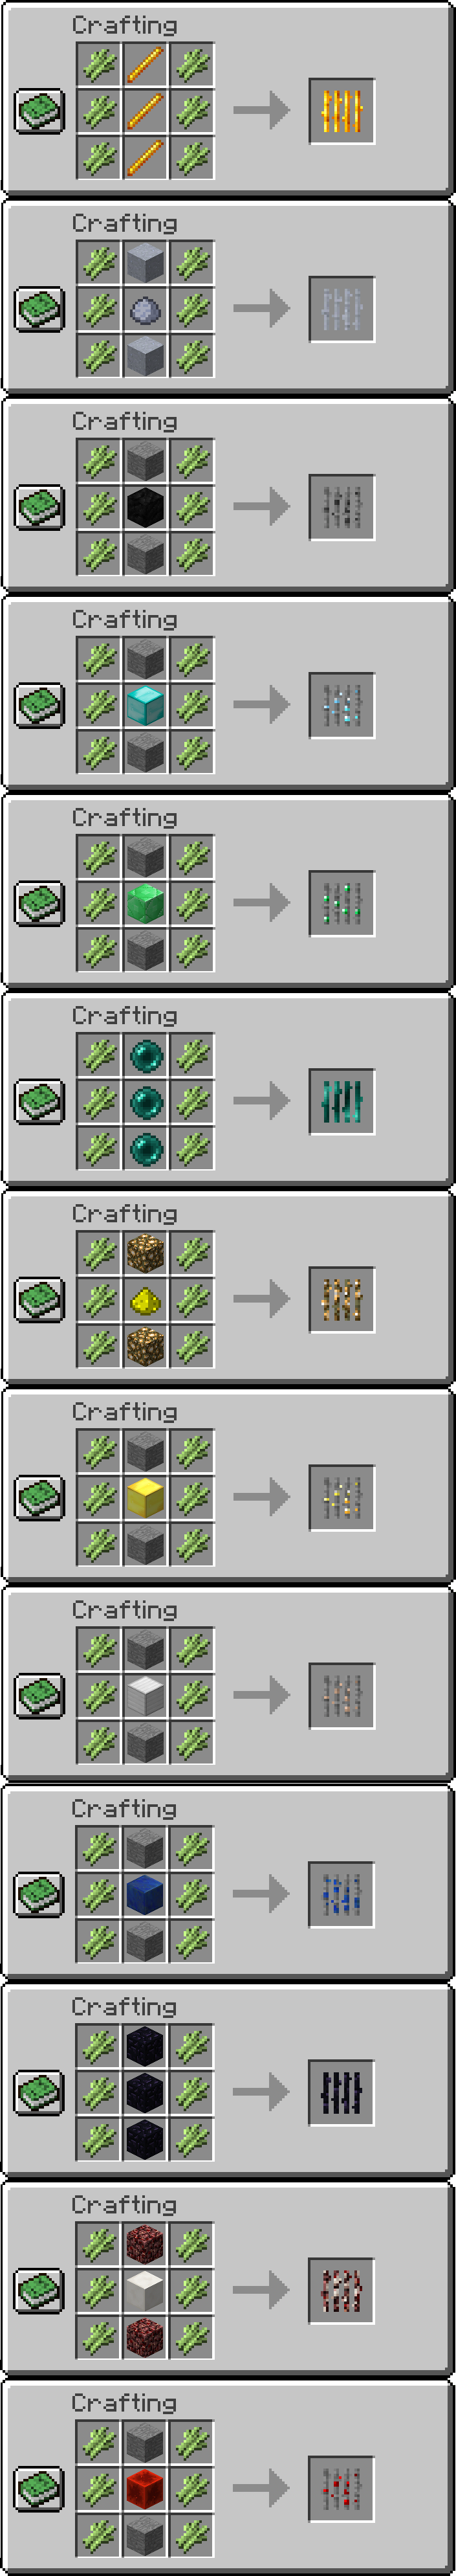 Ore Reeds Mod Crafting Recipes 2